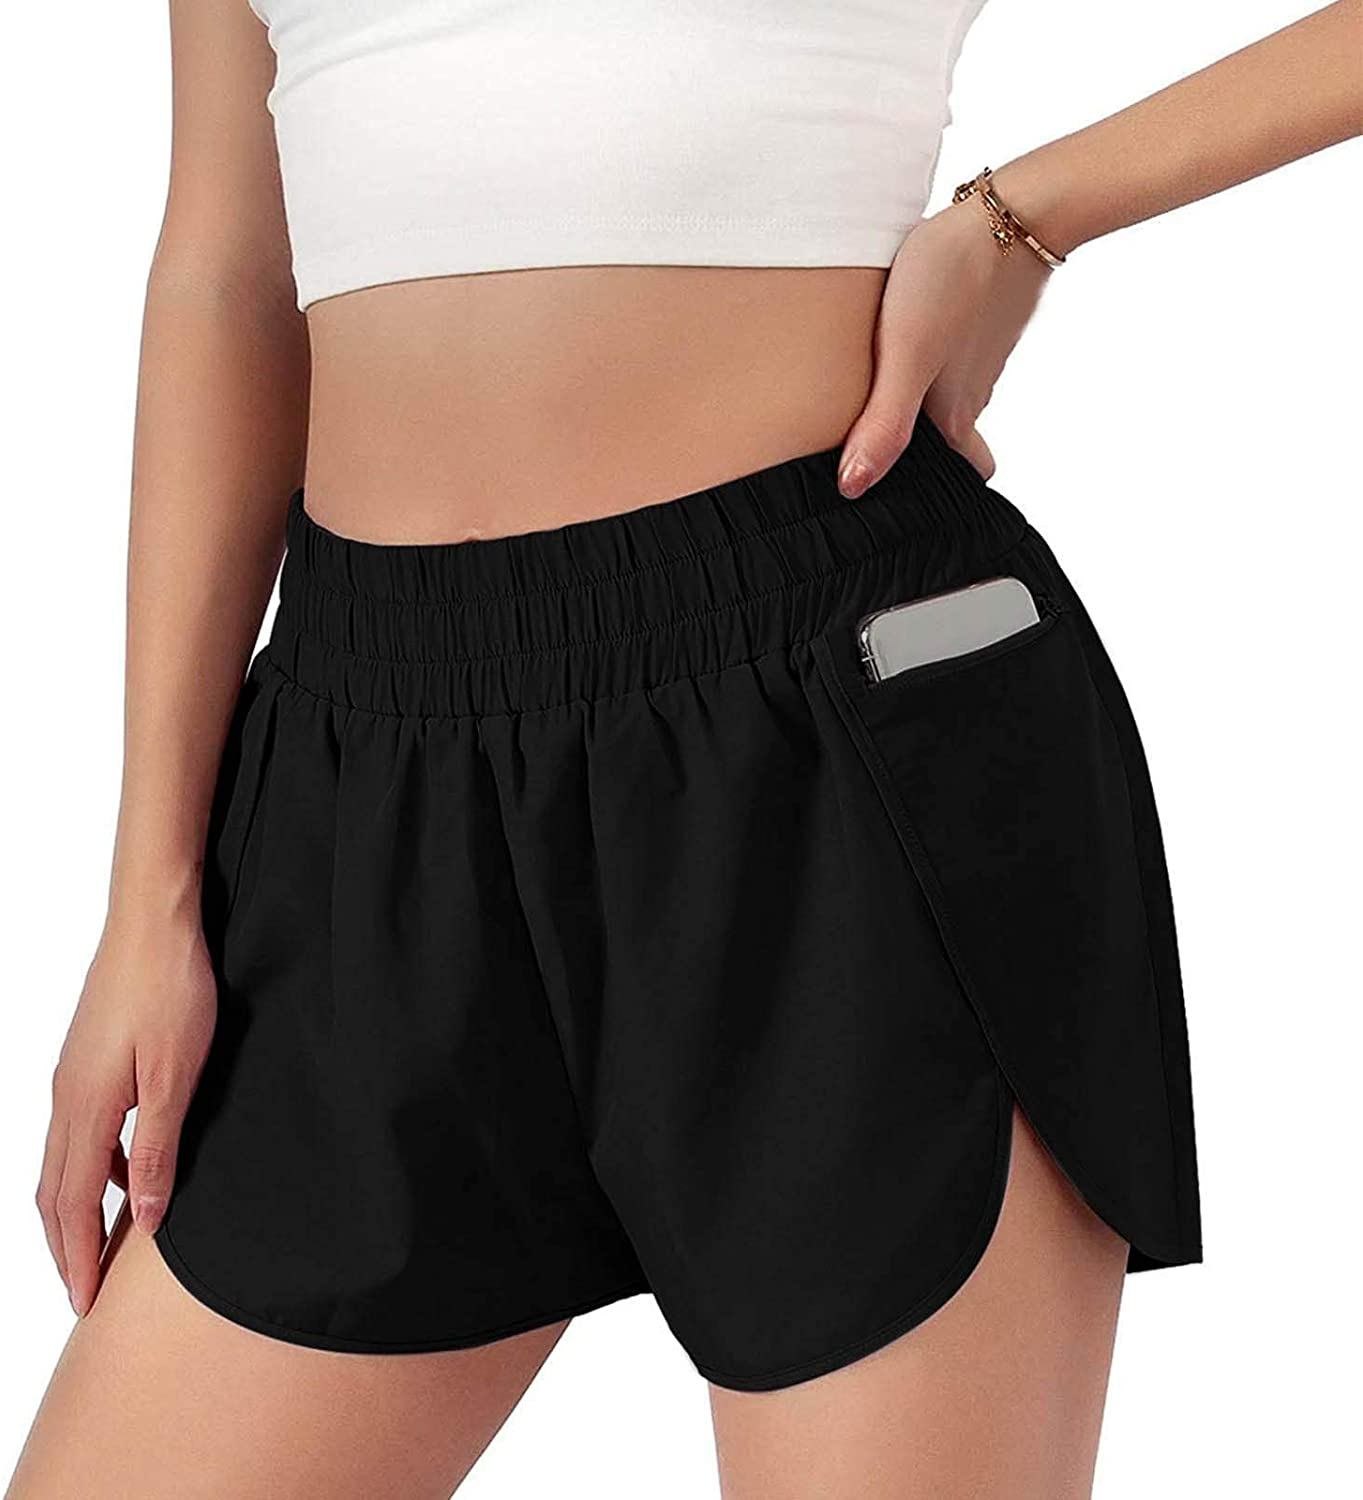 JWIN Workout Shorts Women Sporty Running Elastic Waist Shorts Gym Athletic Quick-Dry Yoga Active Shorts with Zipper Pocket